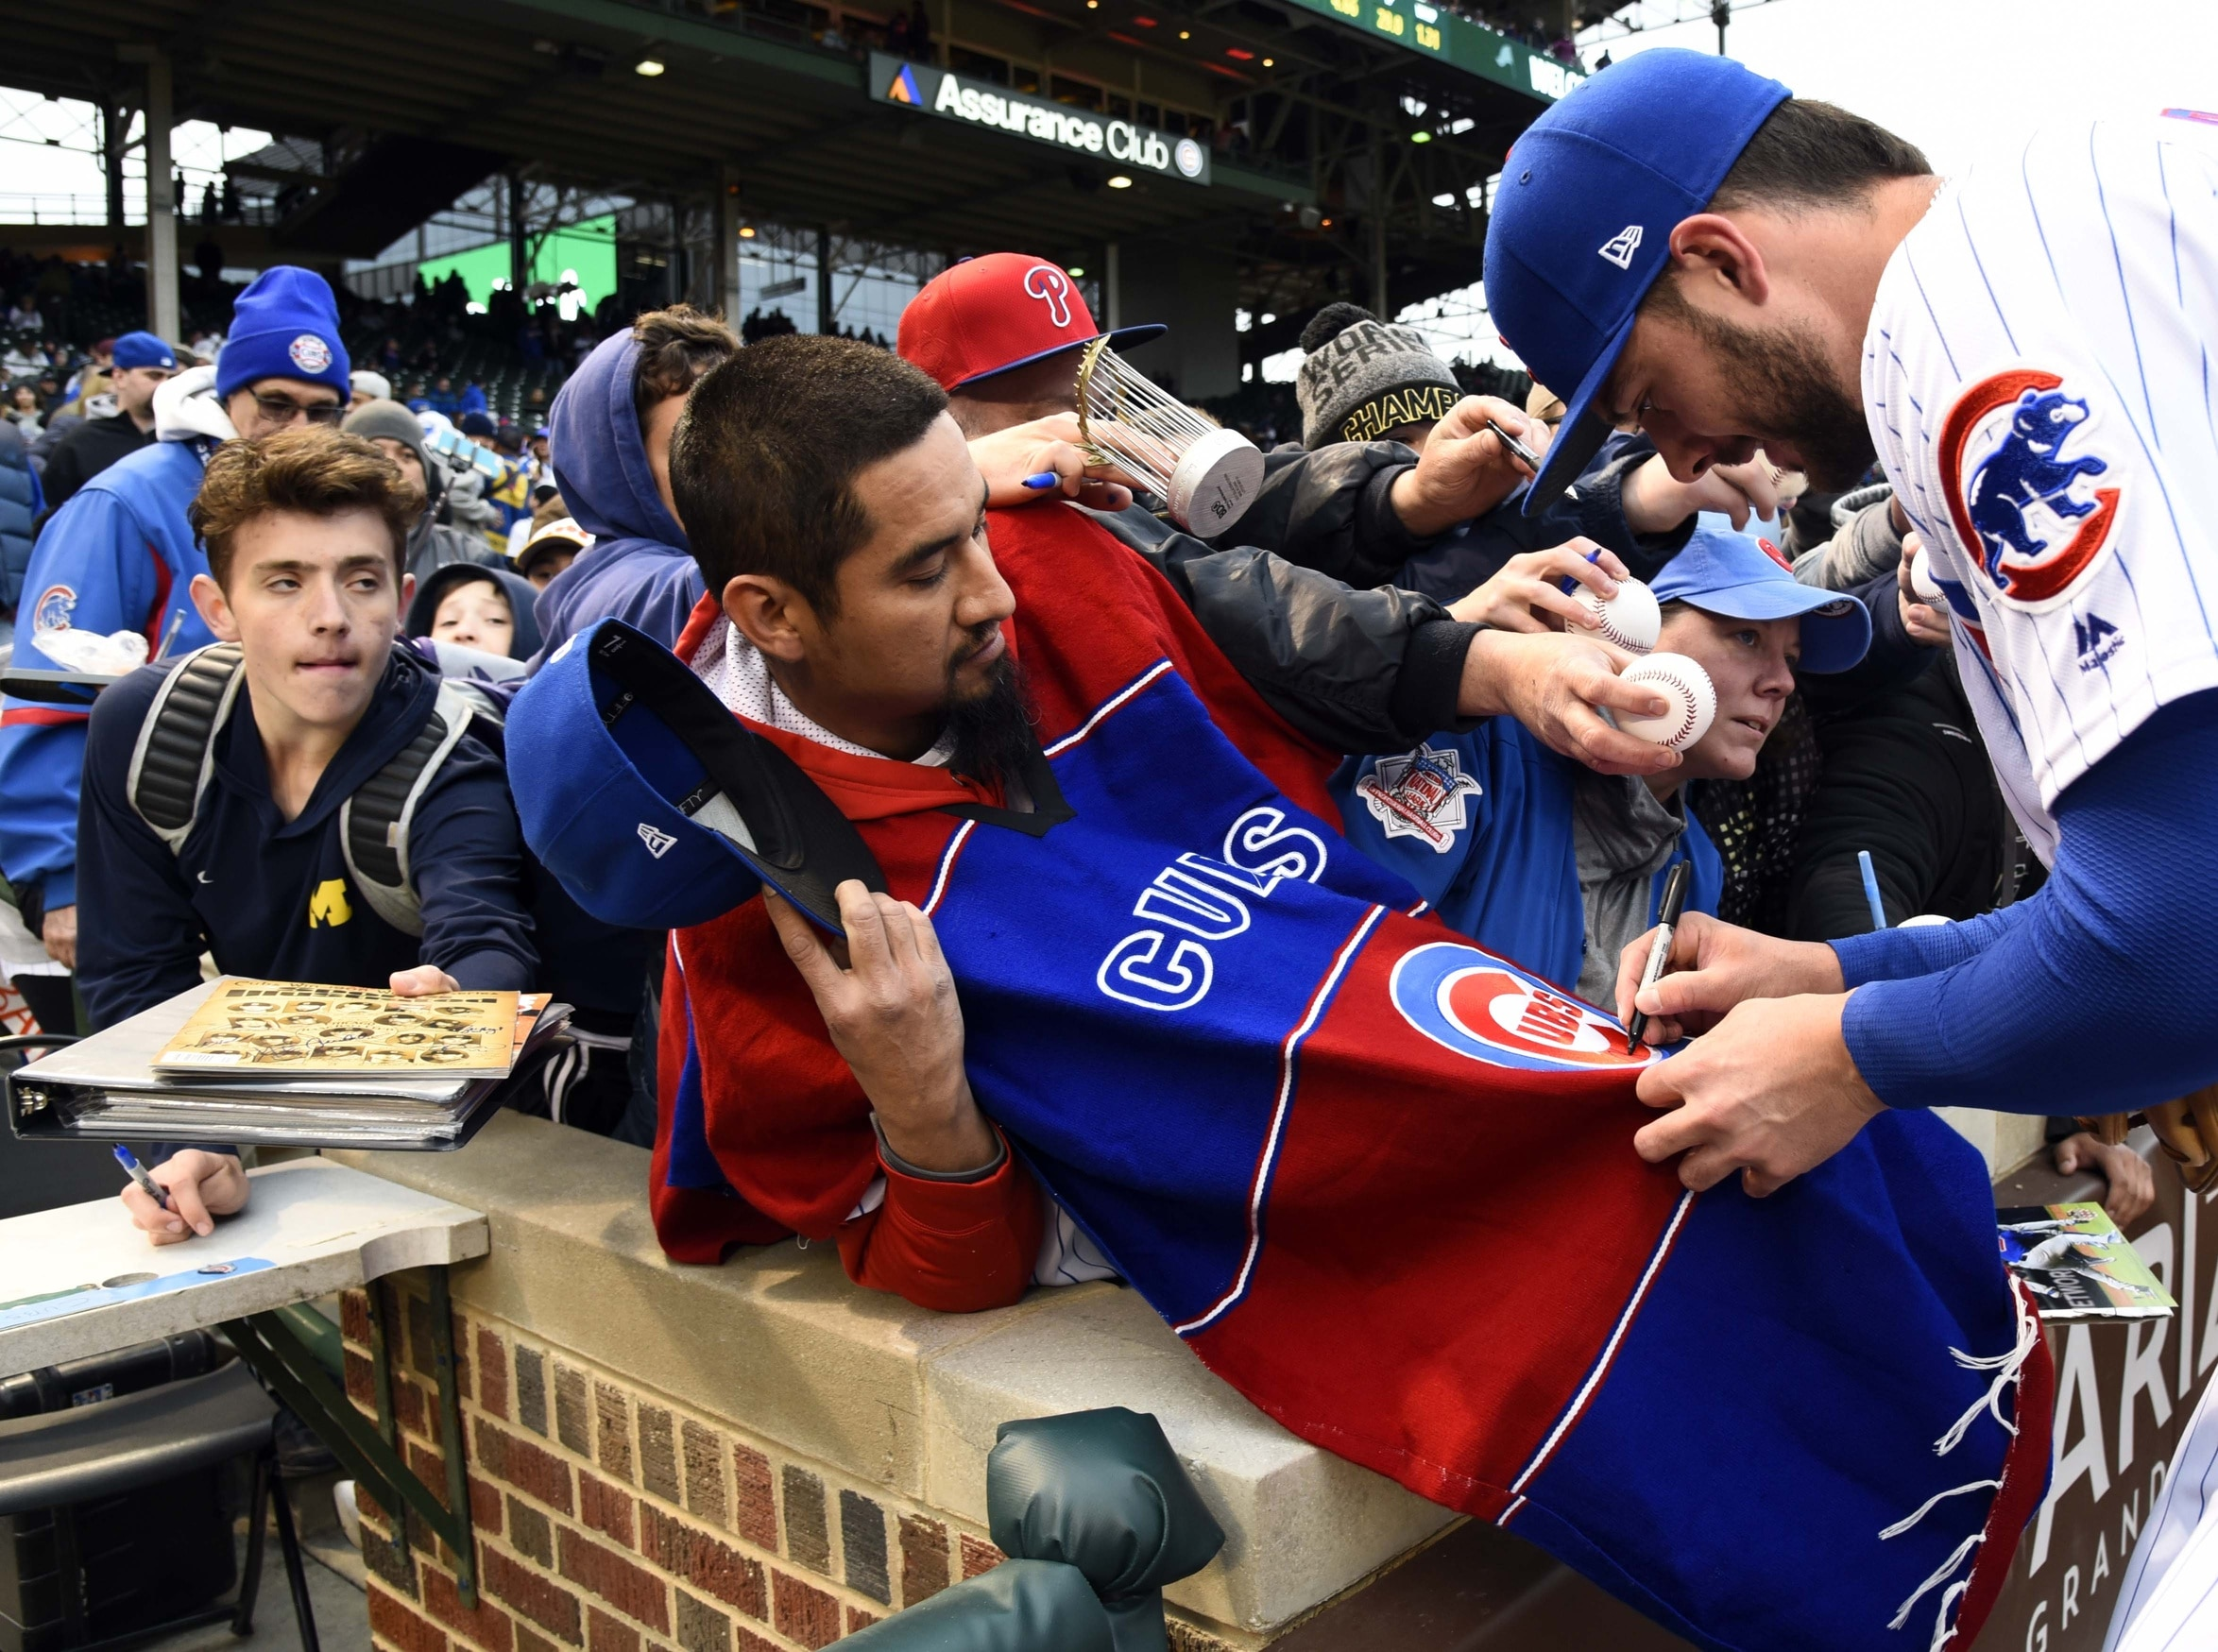 Kris Bryant is one of over 1,000 MLB players who are interacting with fans via Infield Chatter